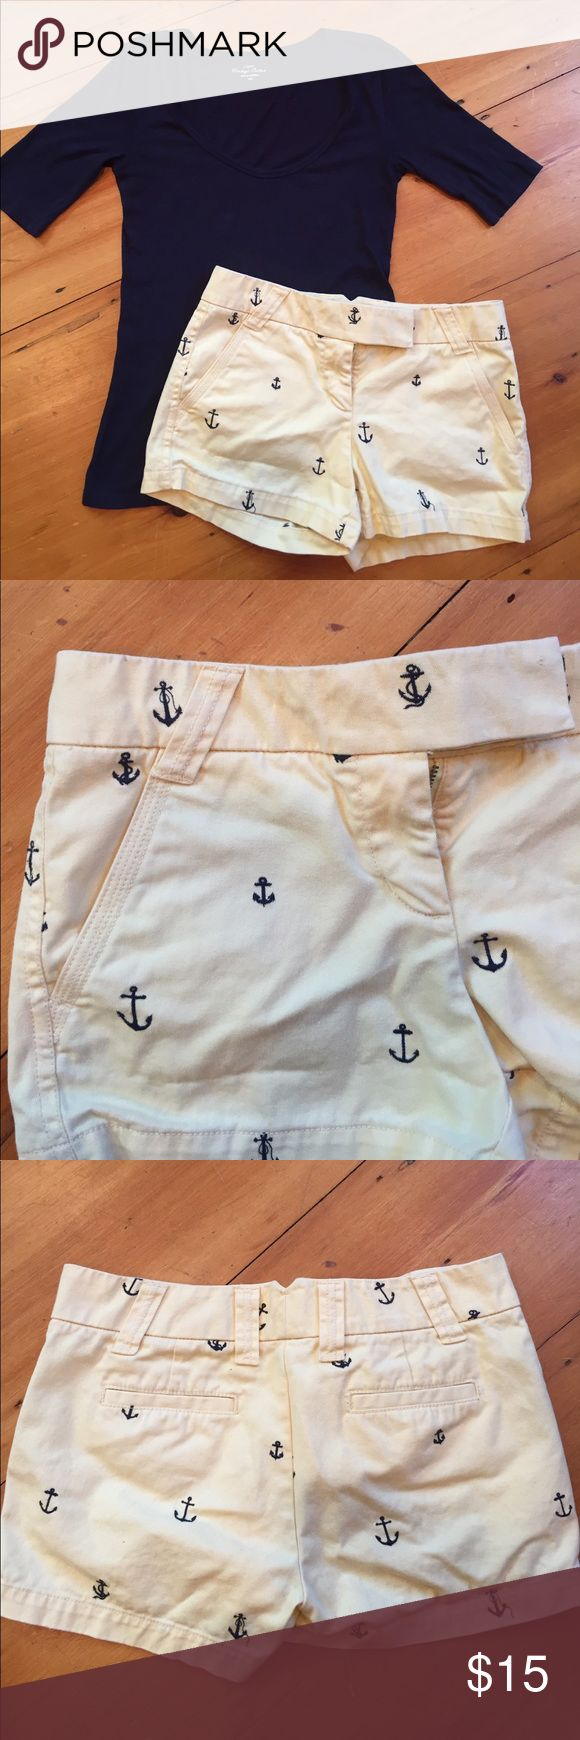 """J Crew Yellow Anchor Shorts J Crew size 0 yellow shorts 11"""" front length, 12"""" back length.  Missing one of the female hook pieces, but I wore them without this part J. Crew Shorts Bermudas"""